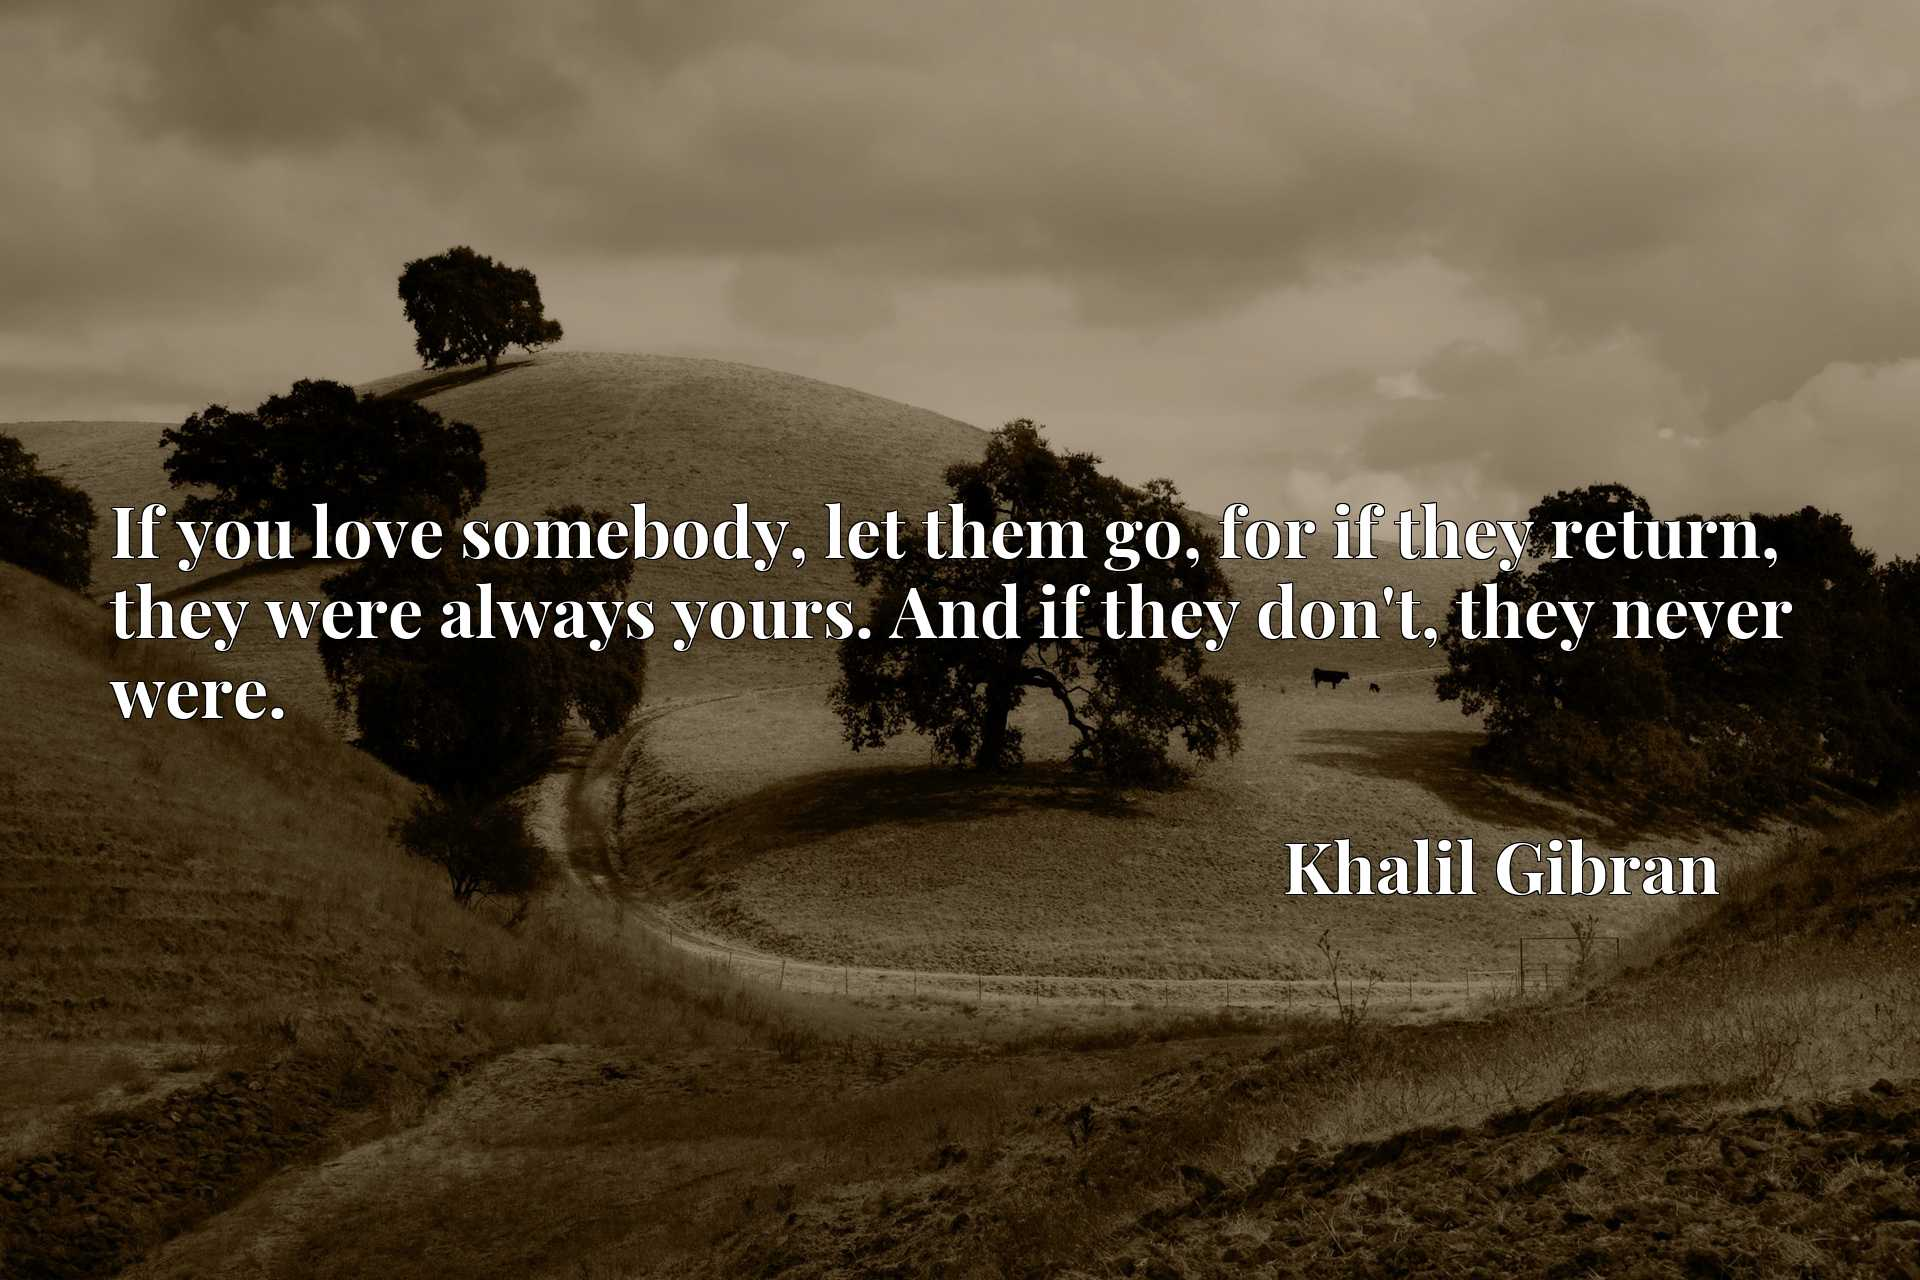 If you love somebody, let them go, for if they return, they were always yours. And if they don't, they never were.